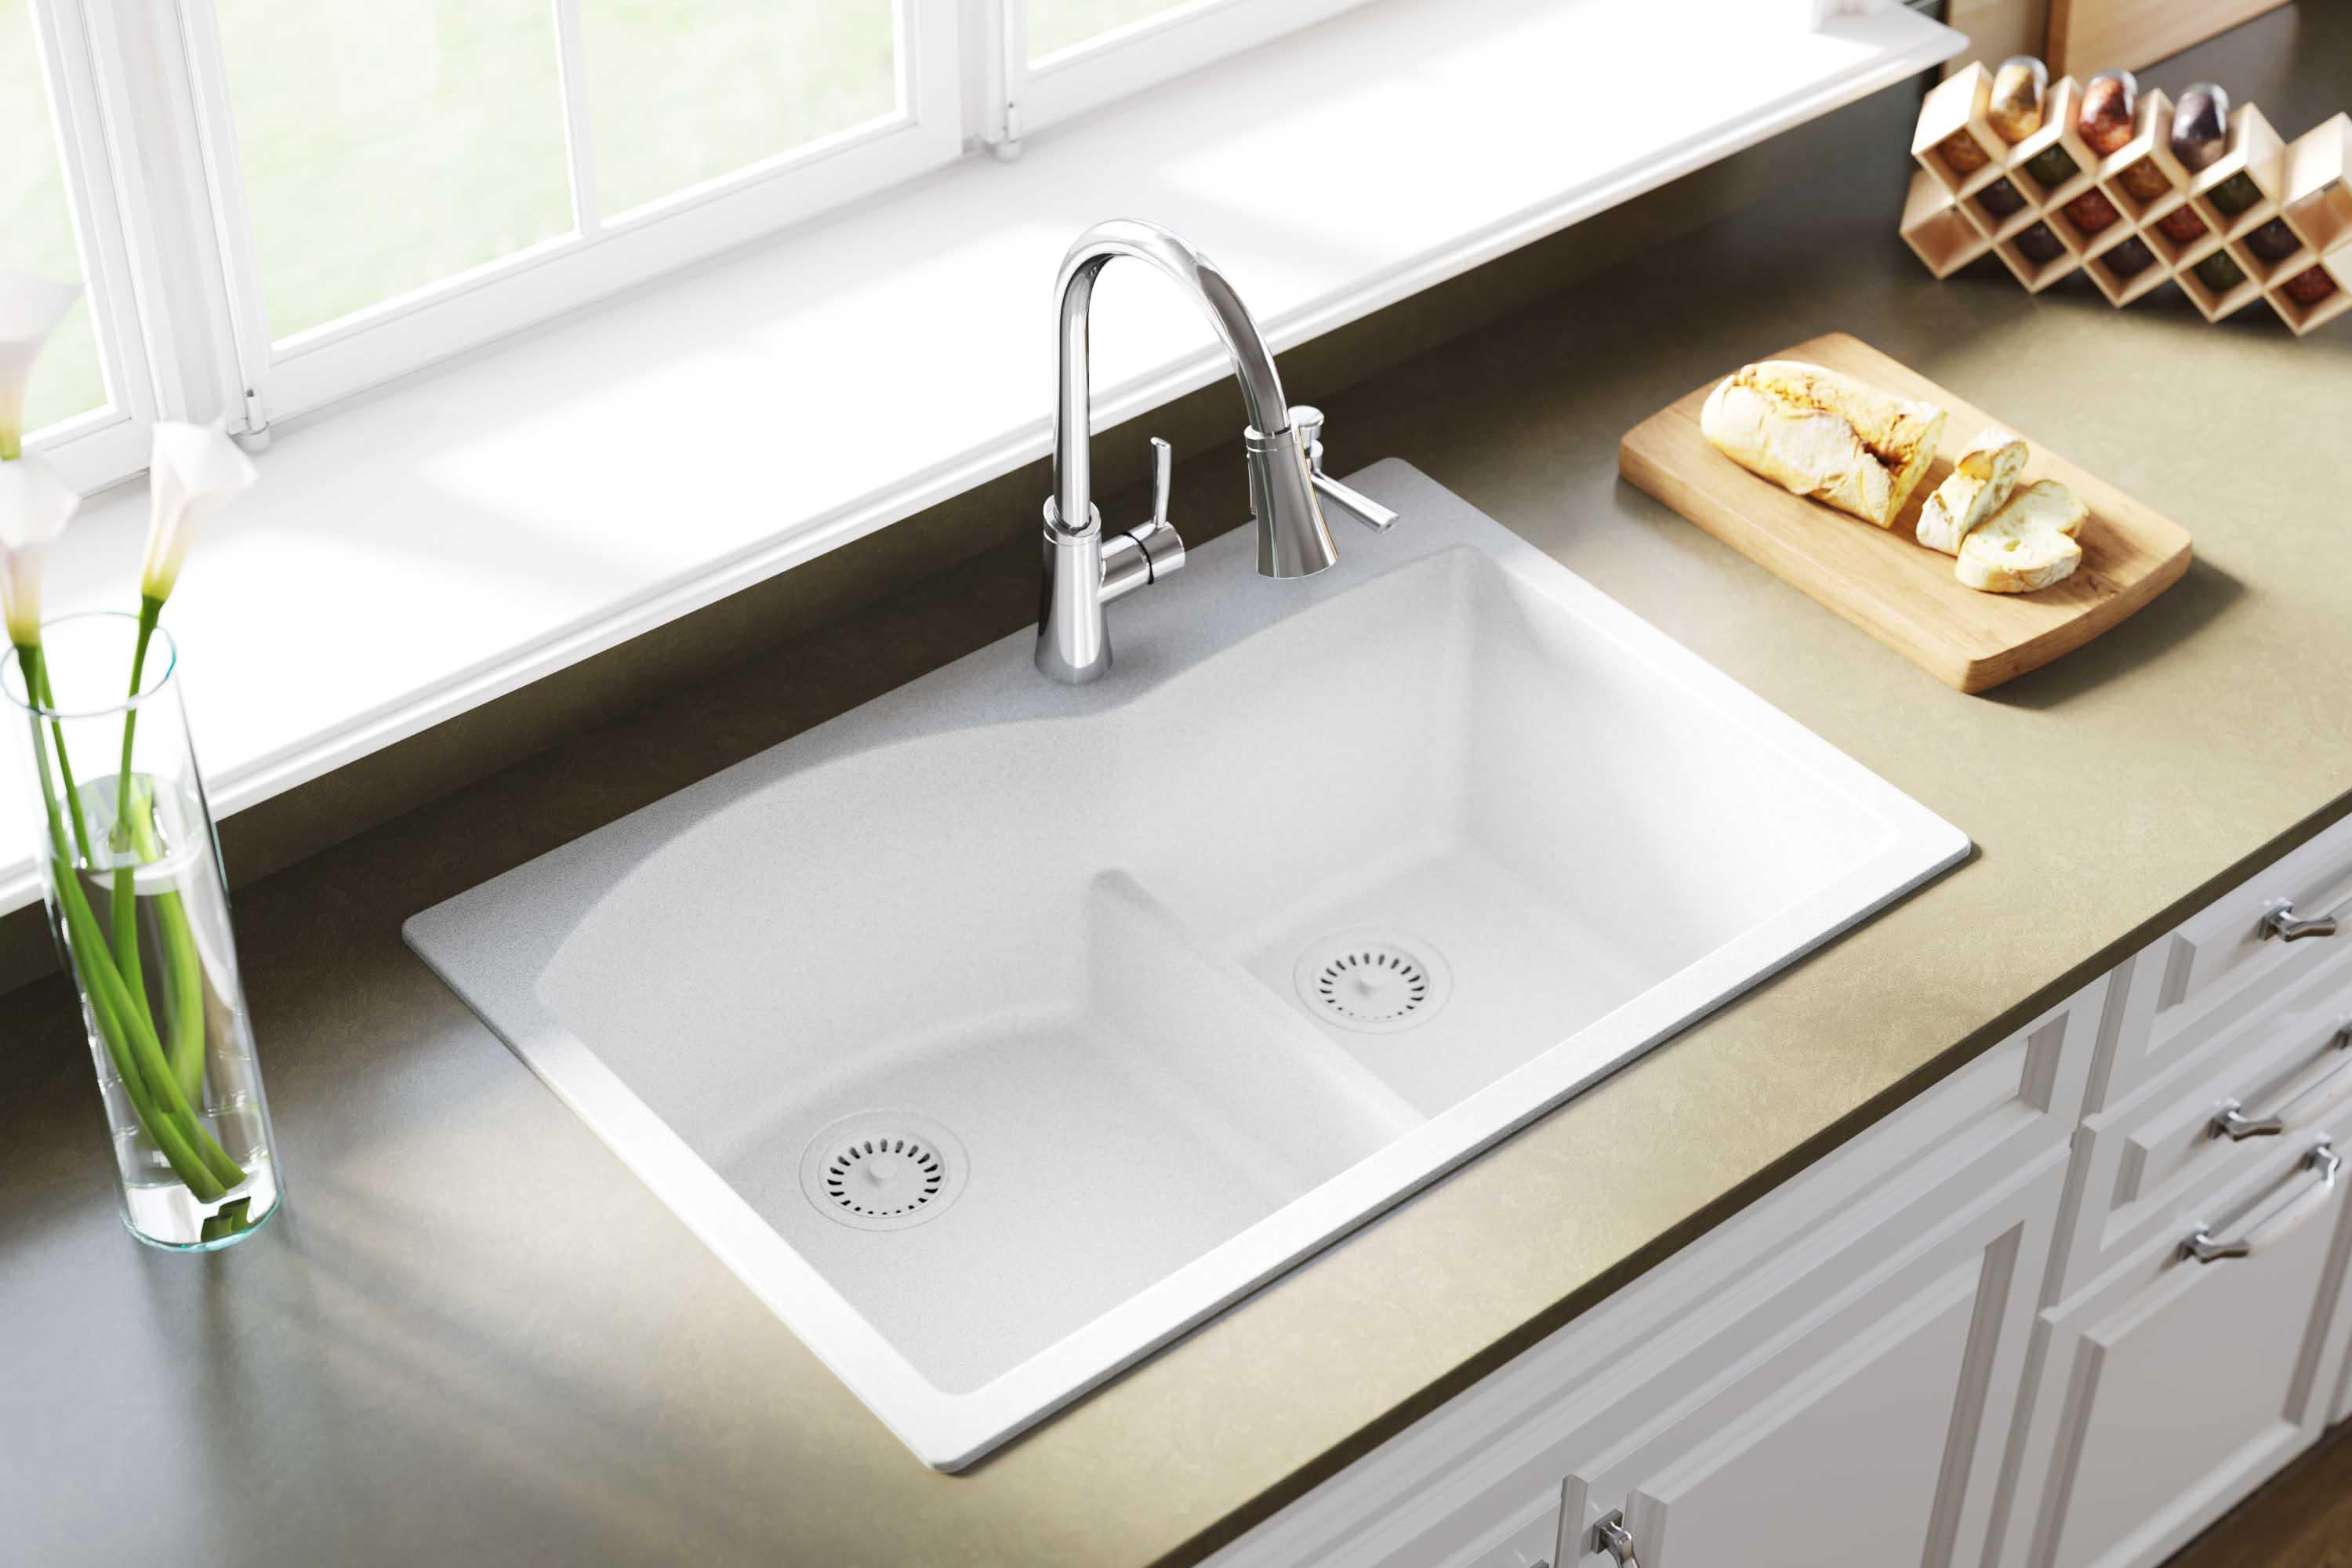 amazing marble countertop sink design and modern faucet.htm elkay elgh3322r quartz classic 33  kitchen sink qualitybath com  elkay elgh3322r quartz classic 33